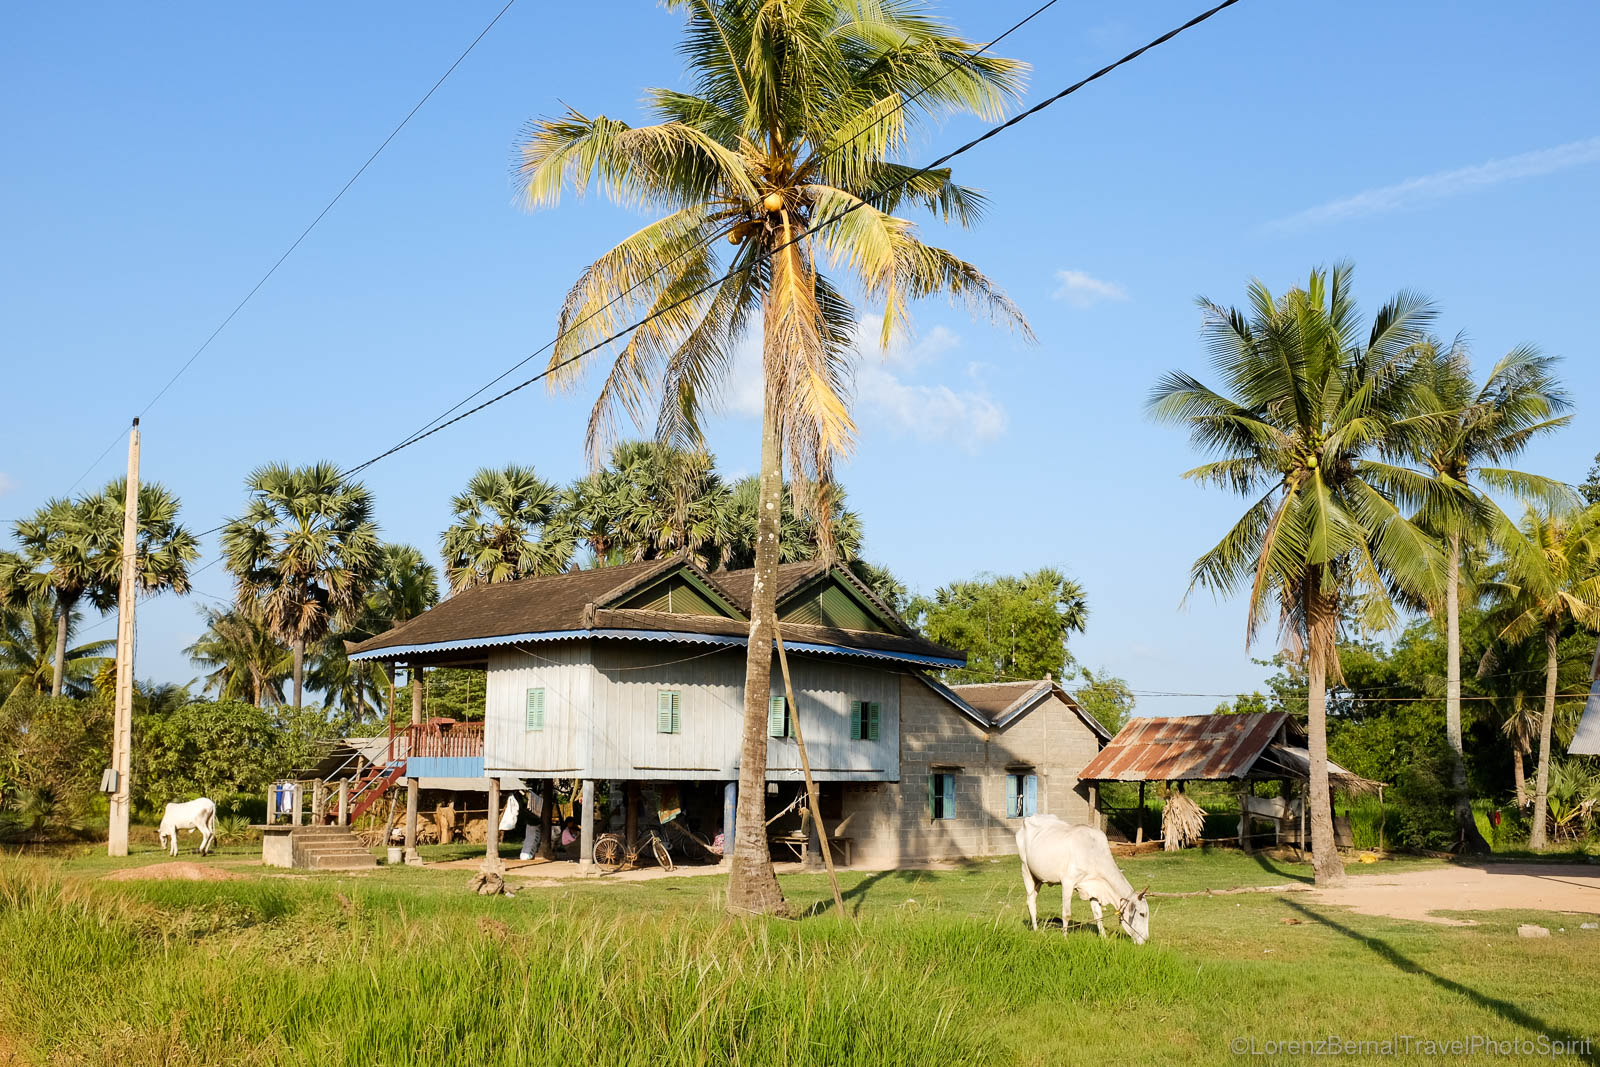 Tradional wooden khmer house on stilt in Kampot countryside, Cambodia